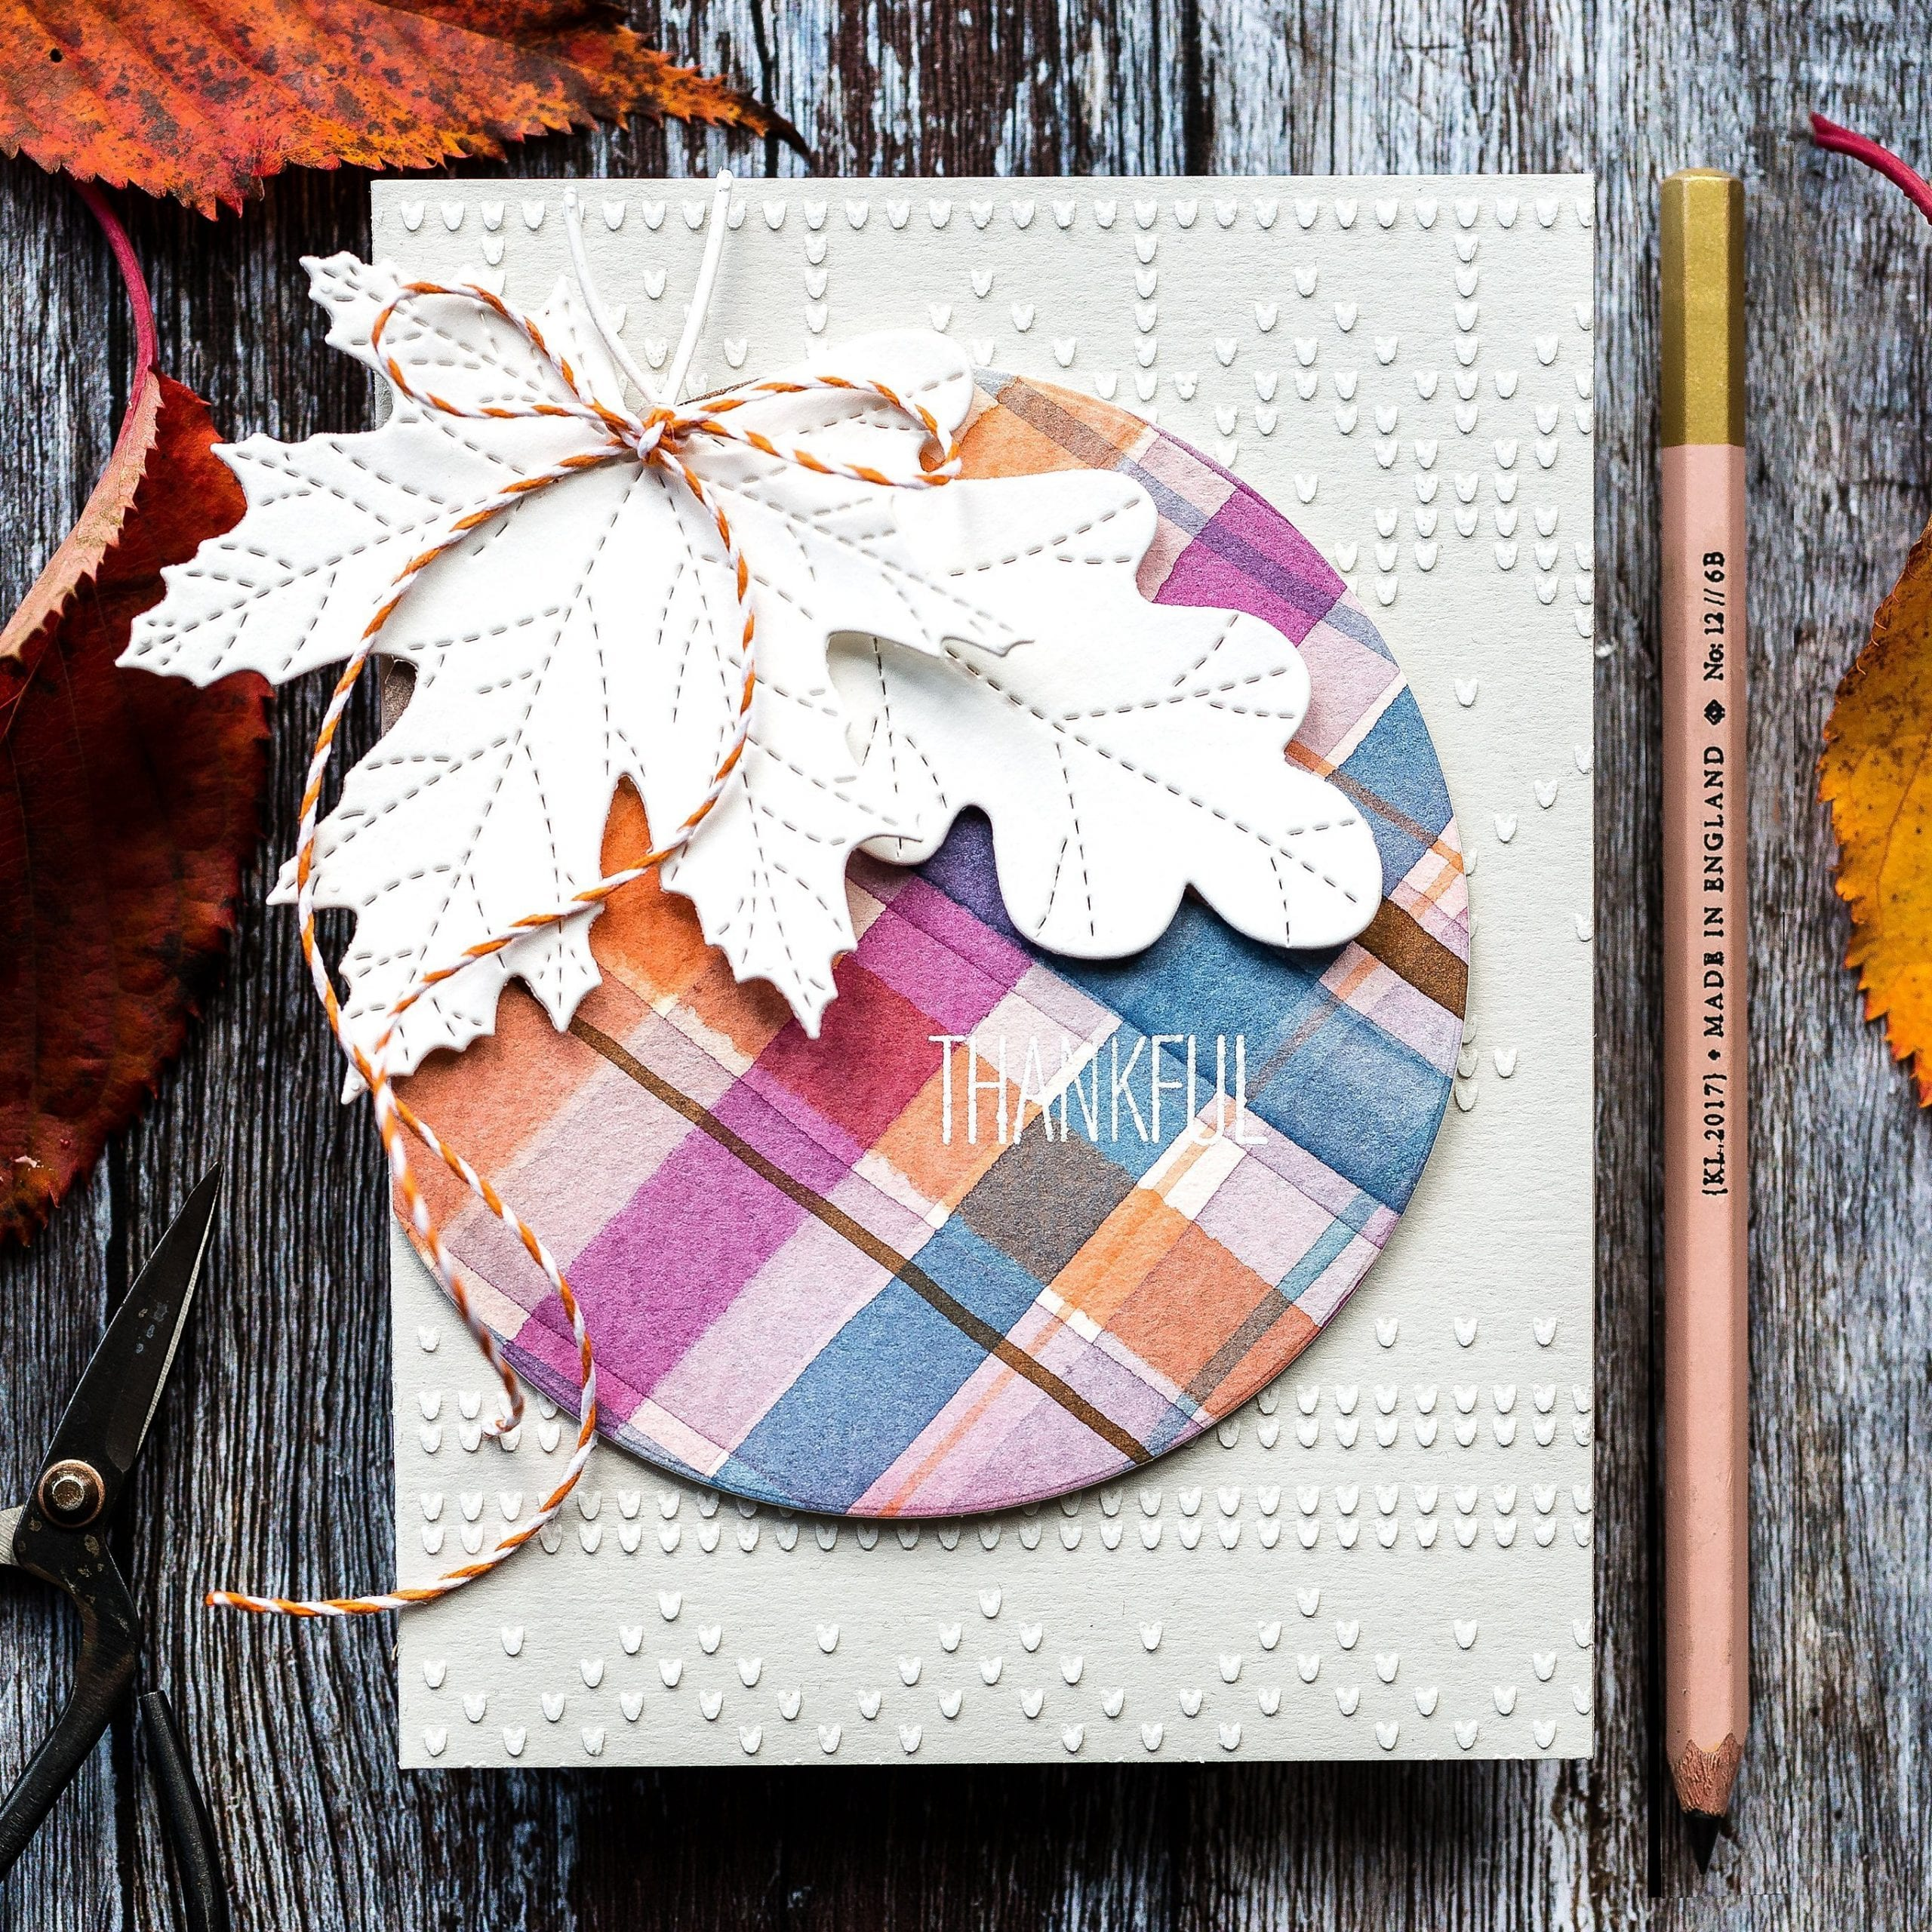 Watercoloured fall tartan thankful handmade autumn card by Debby Hughes. Find out more here: https://limedoodledesign.com/2019/10/watercoloured-fall-tartan-blog-hop-giveaway/